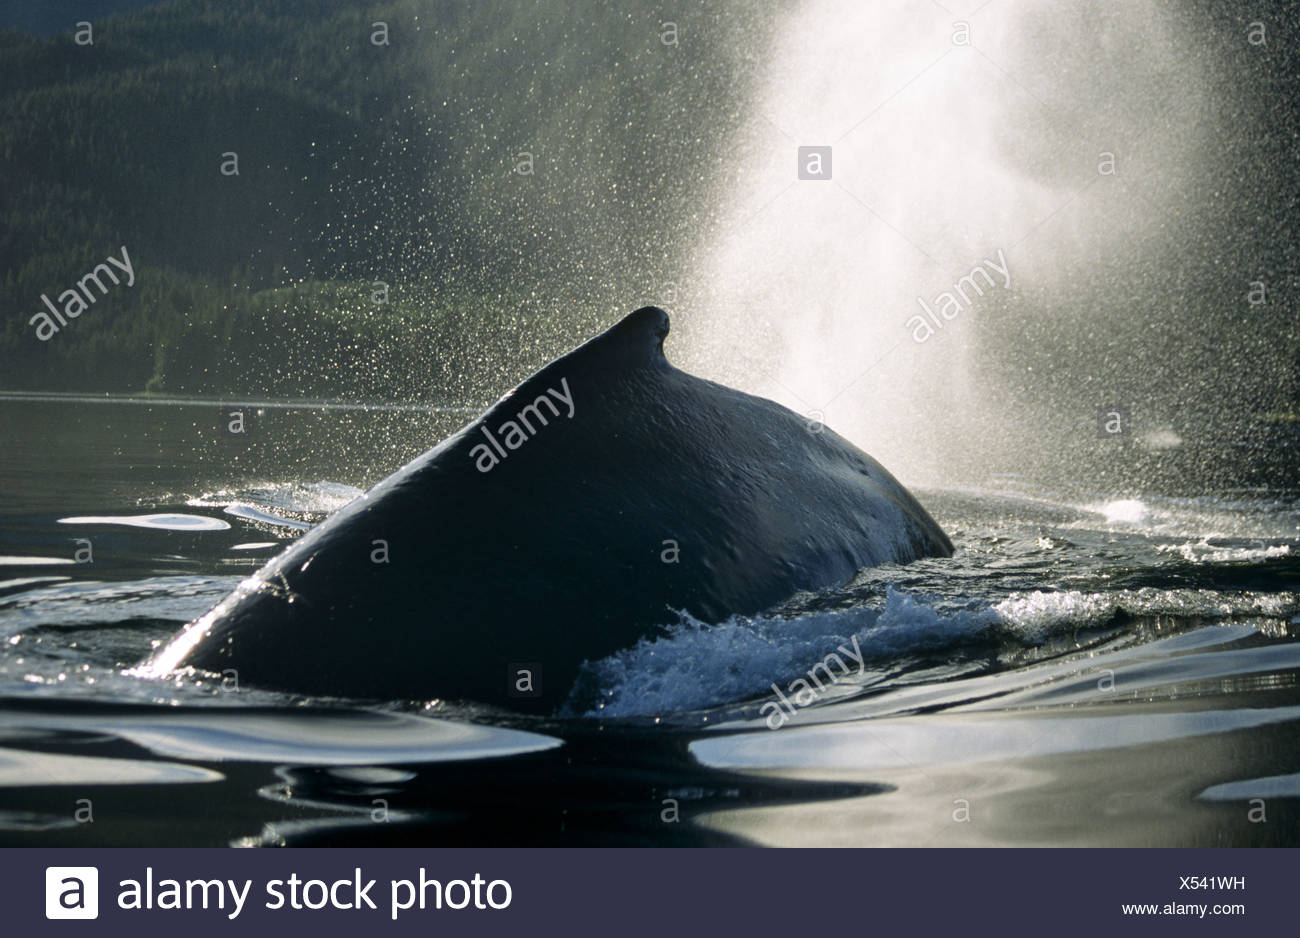 Humpback Whale surfacing and blowing, Tenakee Inlet, Southeast Alaska - Stock Image